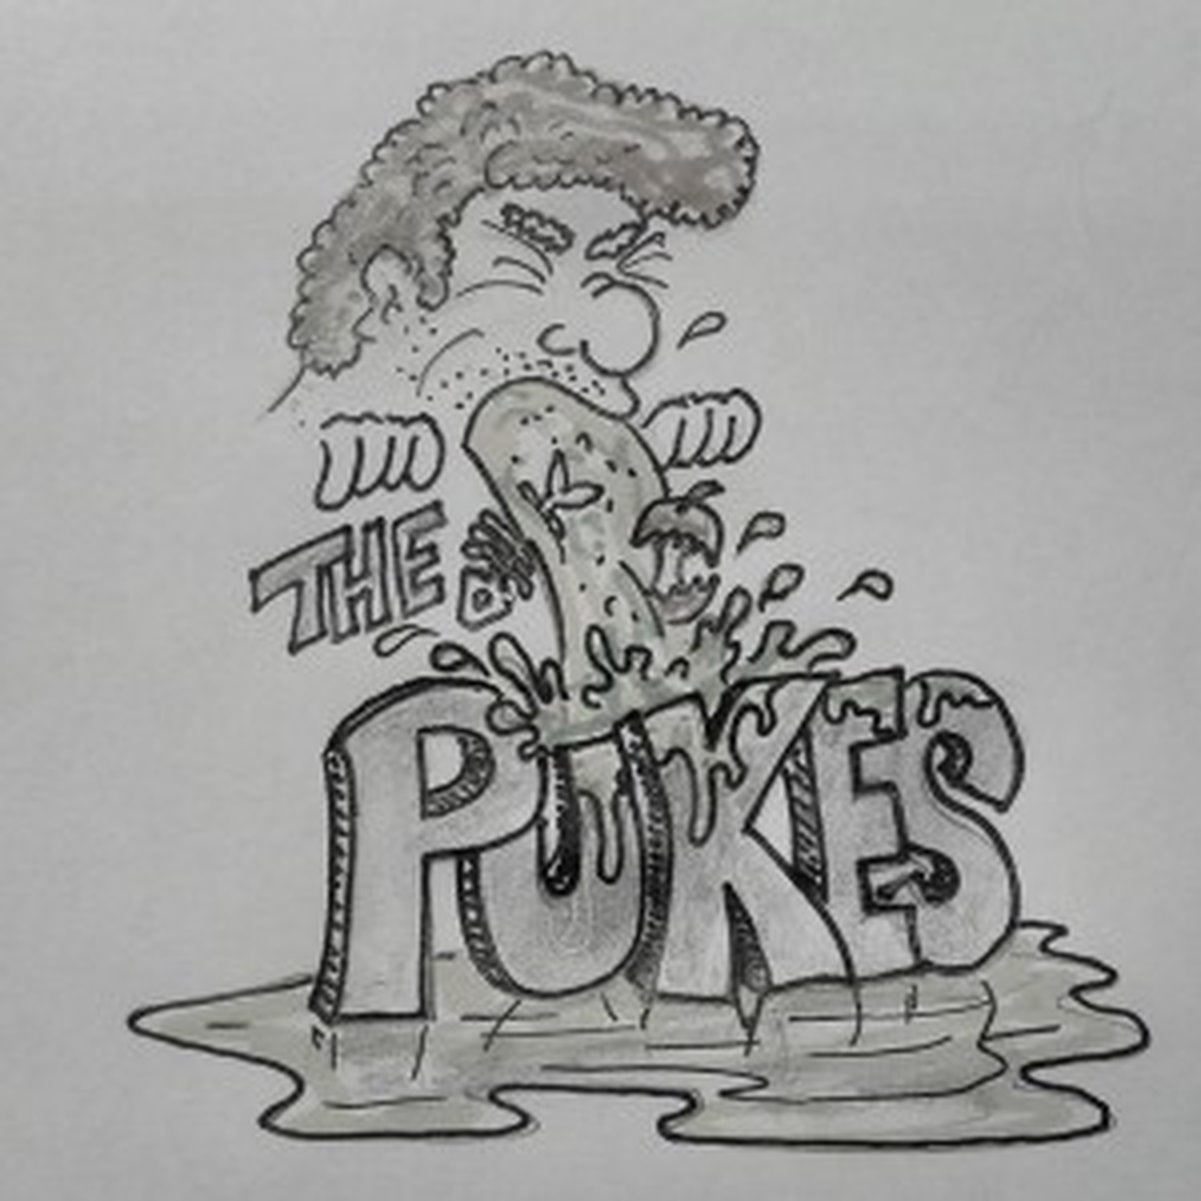 The Pukes wiki, The Pukes review, The Pukes history, The Pukes news